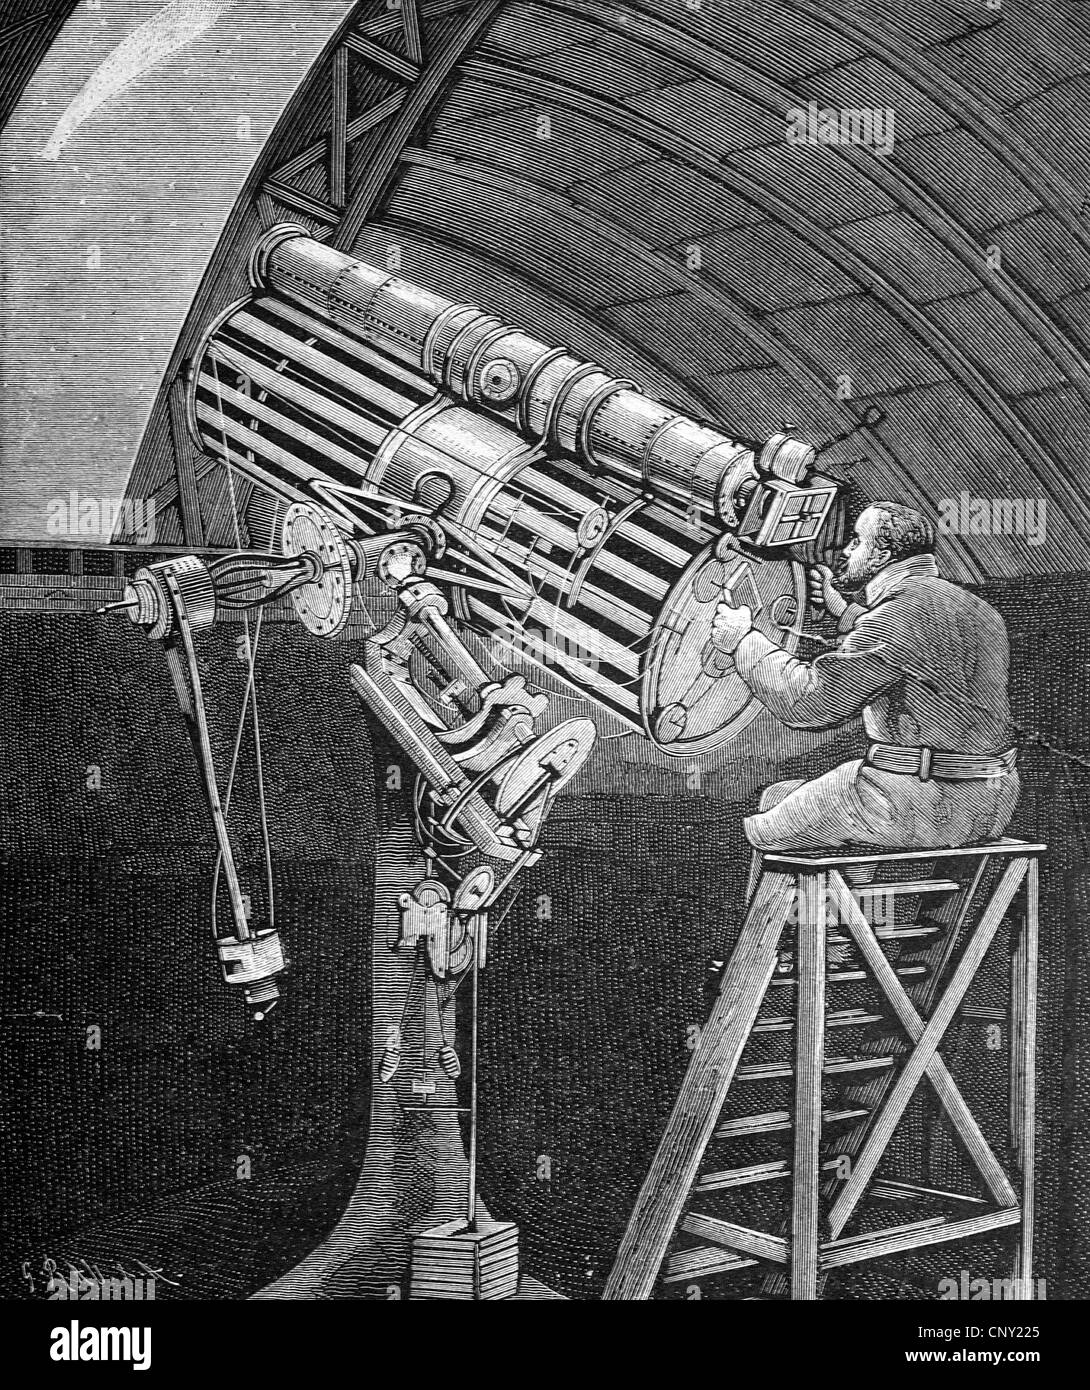 Photographic recording of the comet of 1881 at the observatory in Hastings by Professor Henry Draper, 1837-1882, - Stock Image